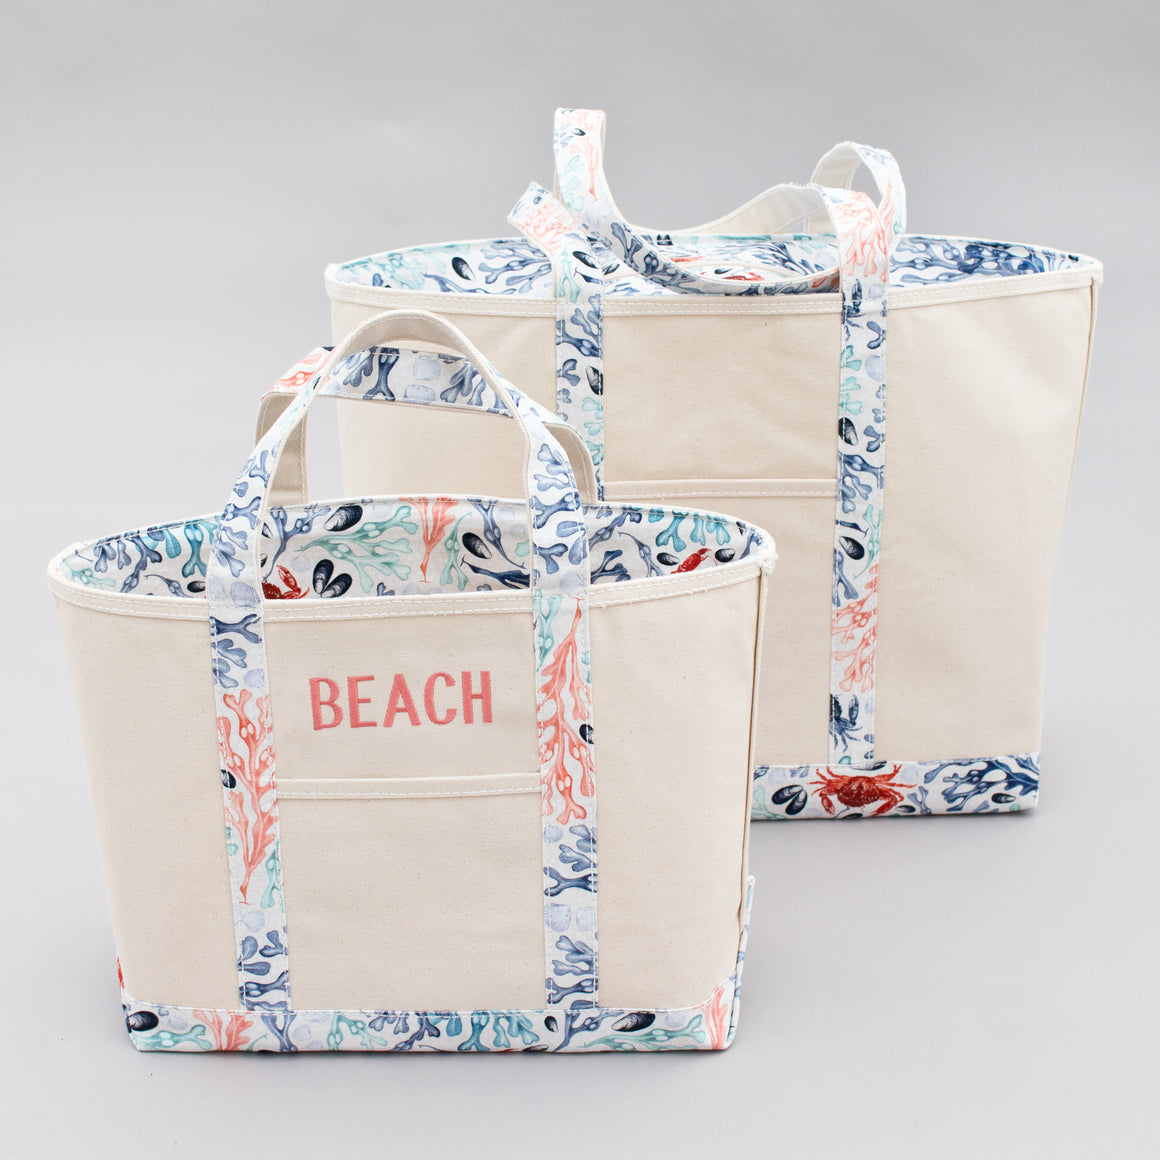 Limited Tote Bag - Beach Skanor Sunset - Sizes